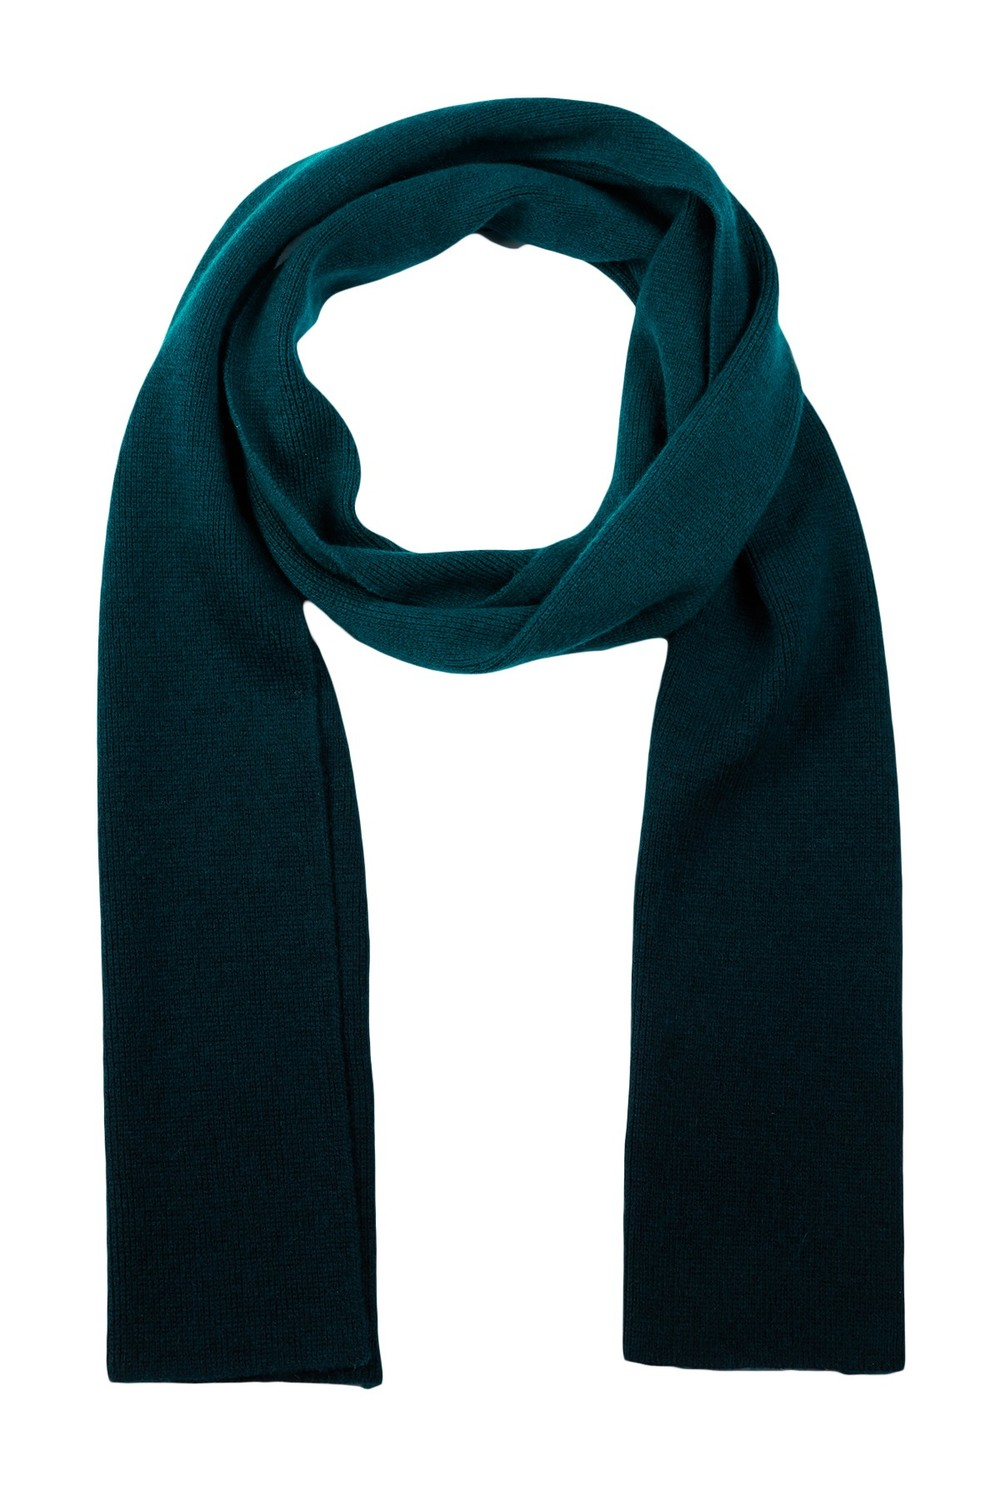 Vince Dip Dye Scarf. Available in multiple colors. Nordstrom Rack. Was: $195 Now: $68.